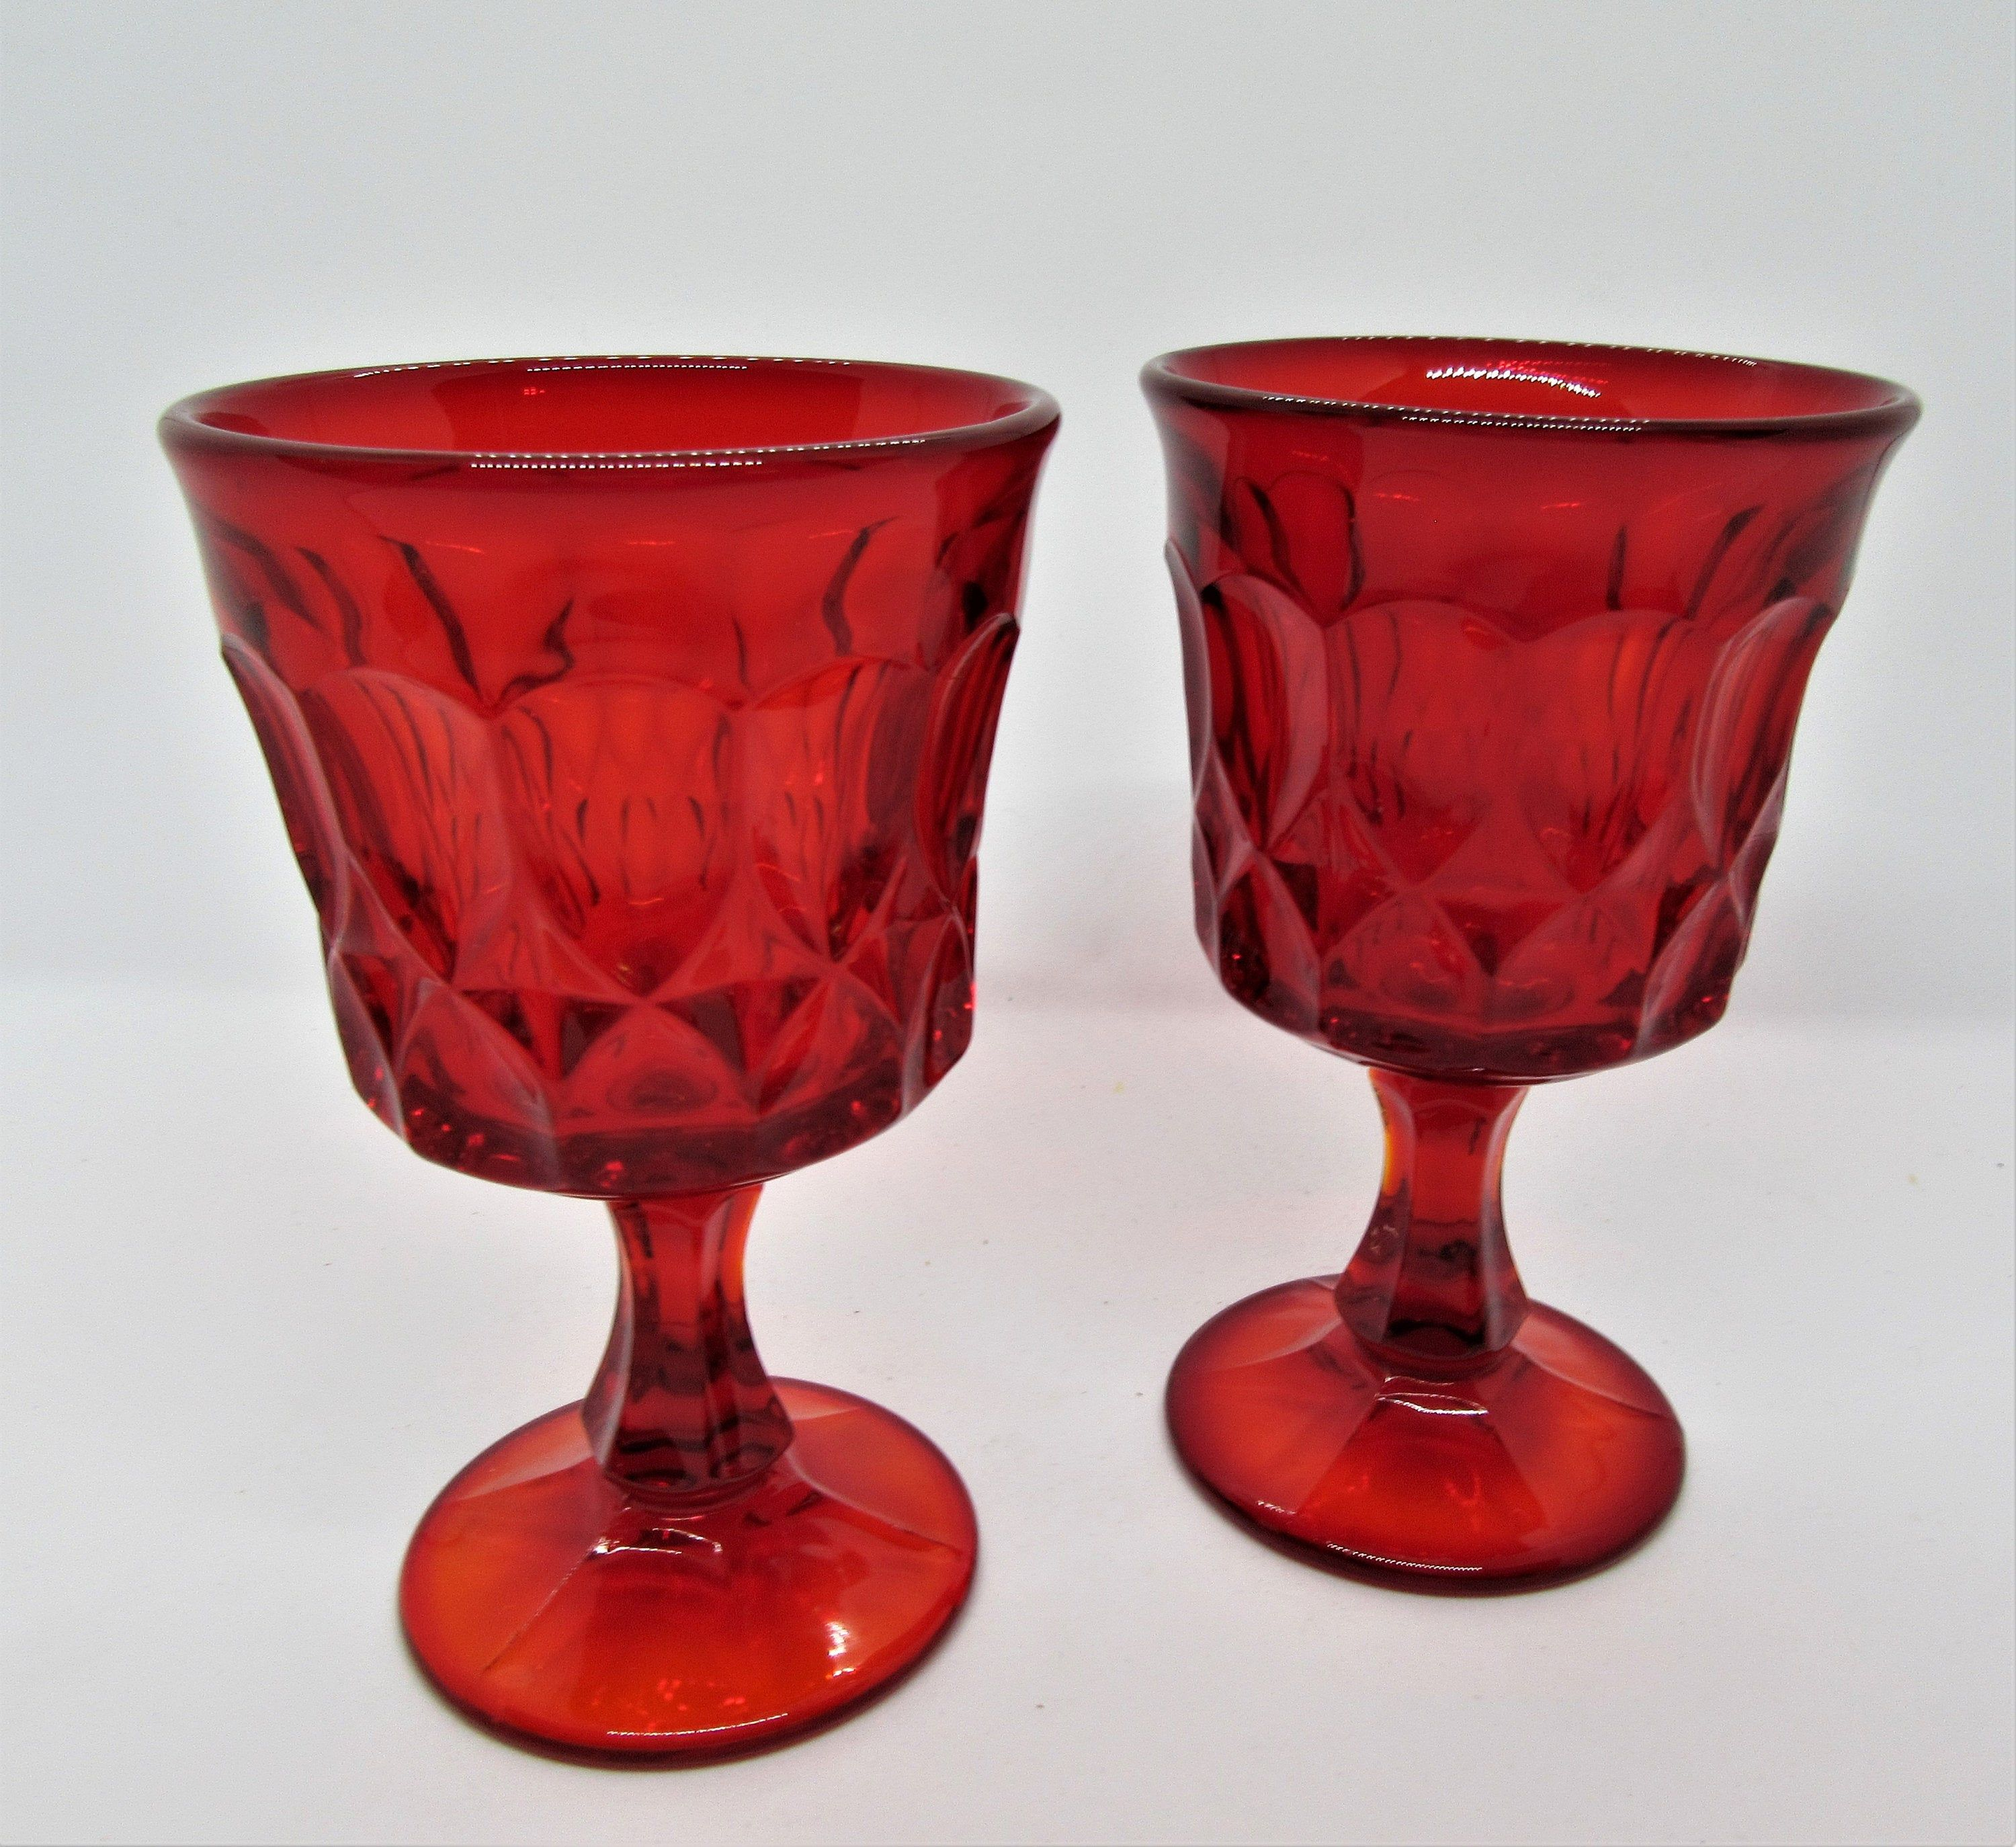 Red Wine Goblets Noritake Perspective Set Of 2 70 S Design Vintage Wine Glasses Wine Goblets Vintage Glassware